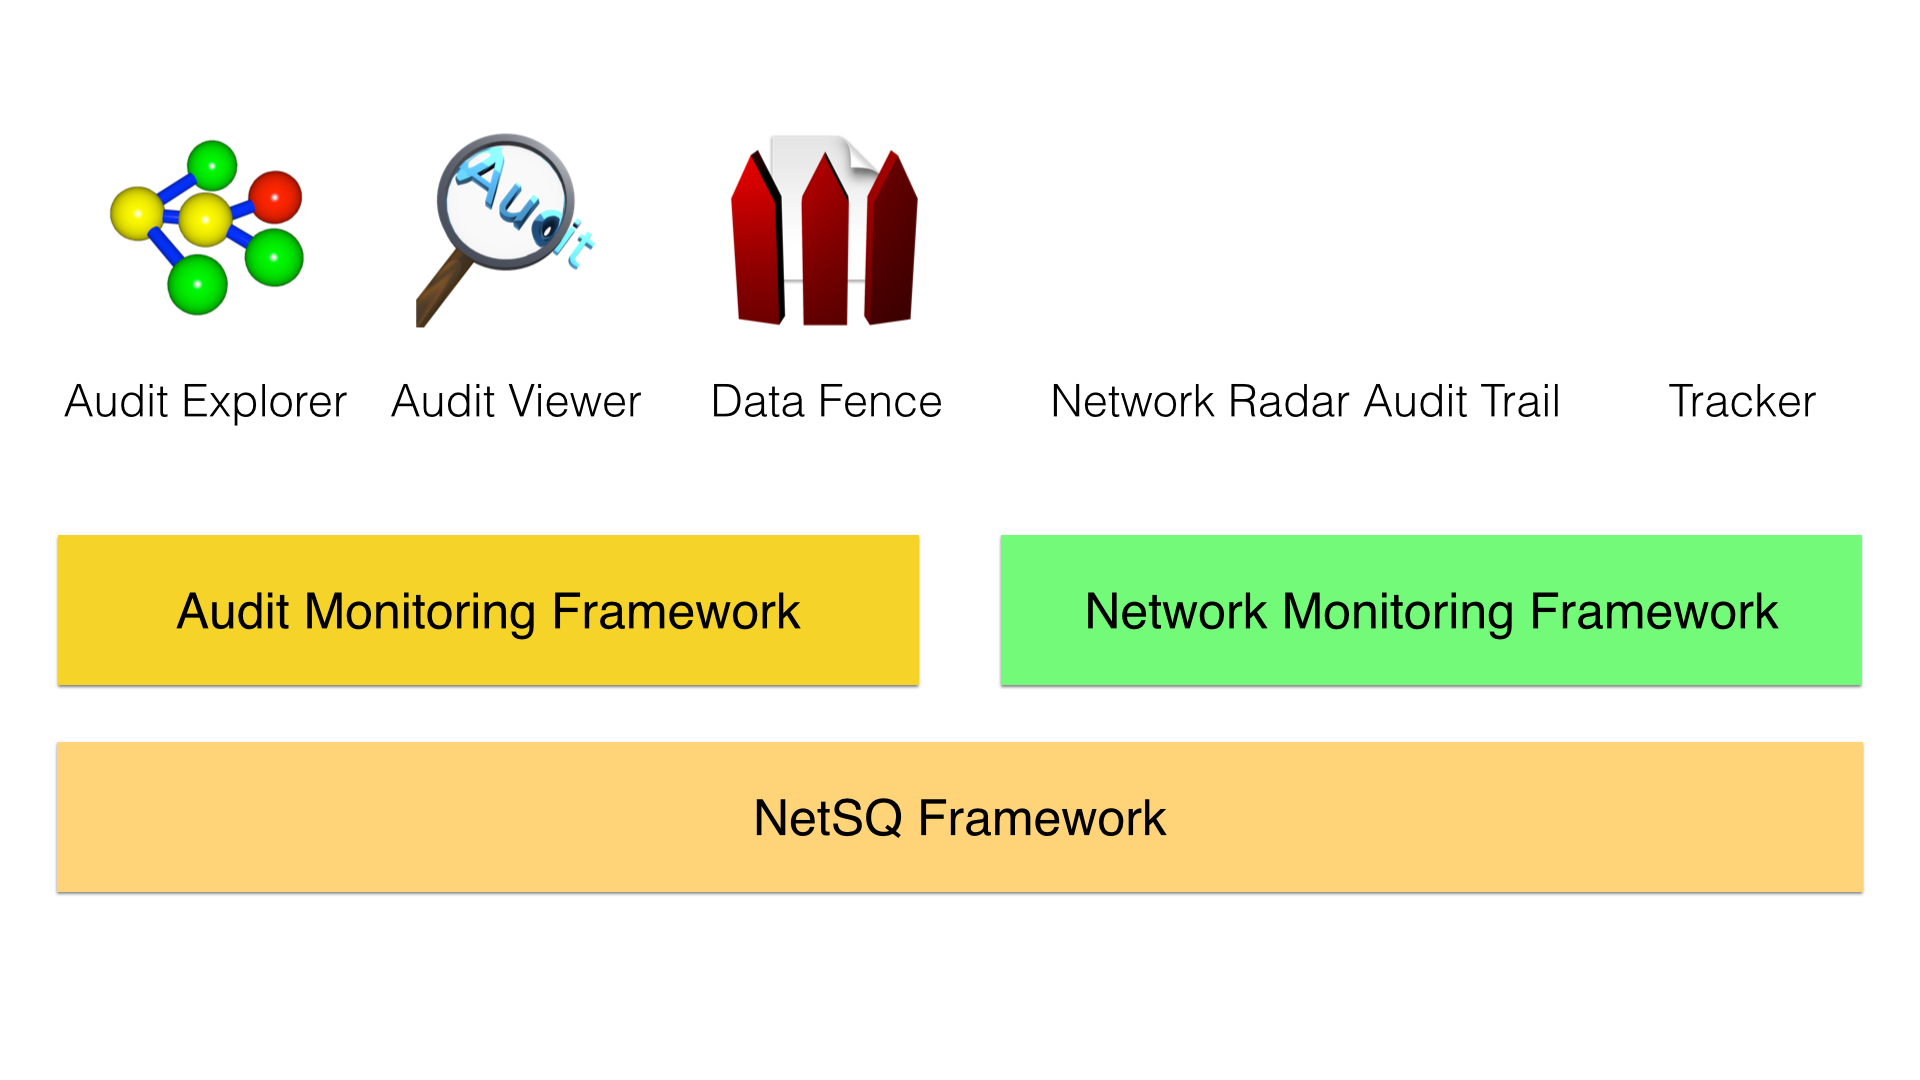 Monitoring frameworks and applications